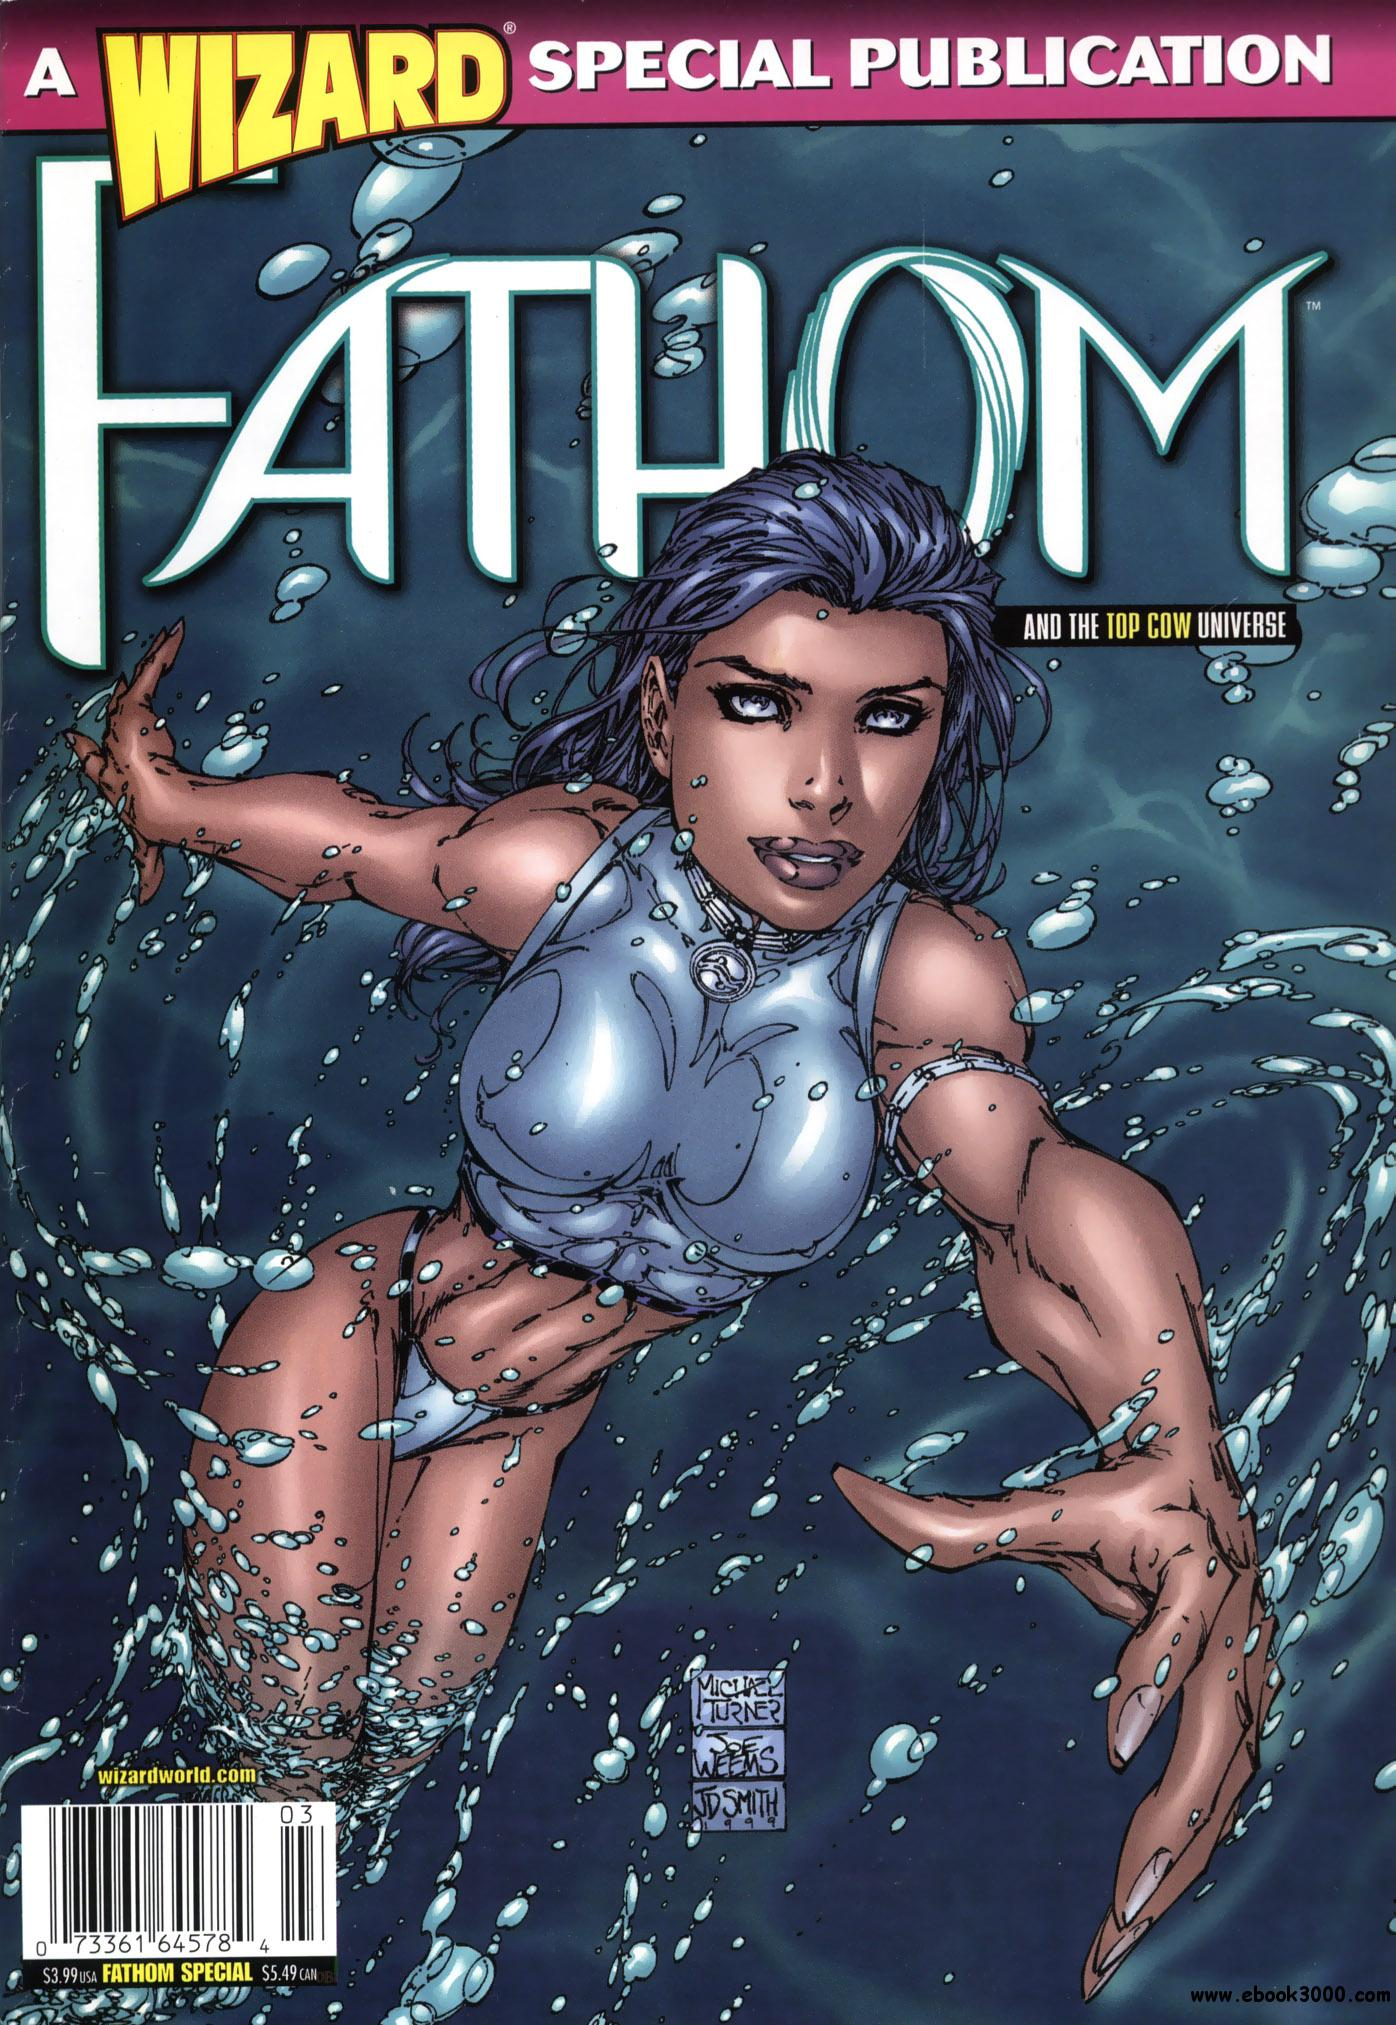 Wizard Special - Fathom and the Top Cow Universe (1999) free download